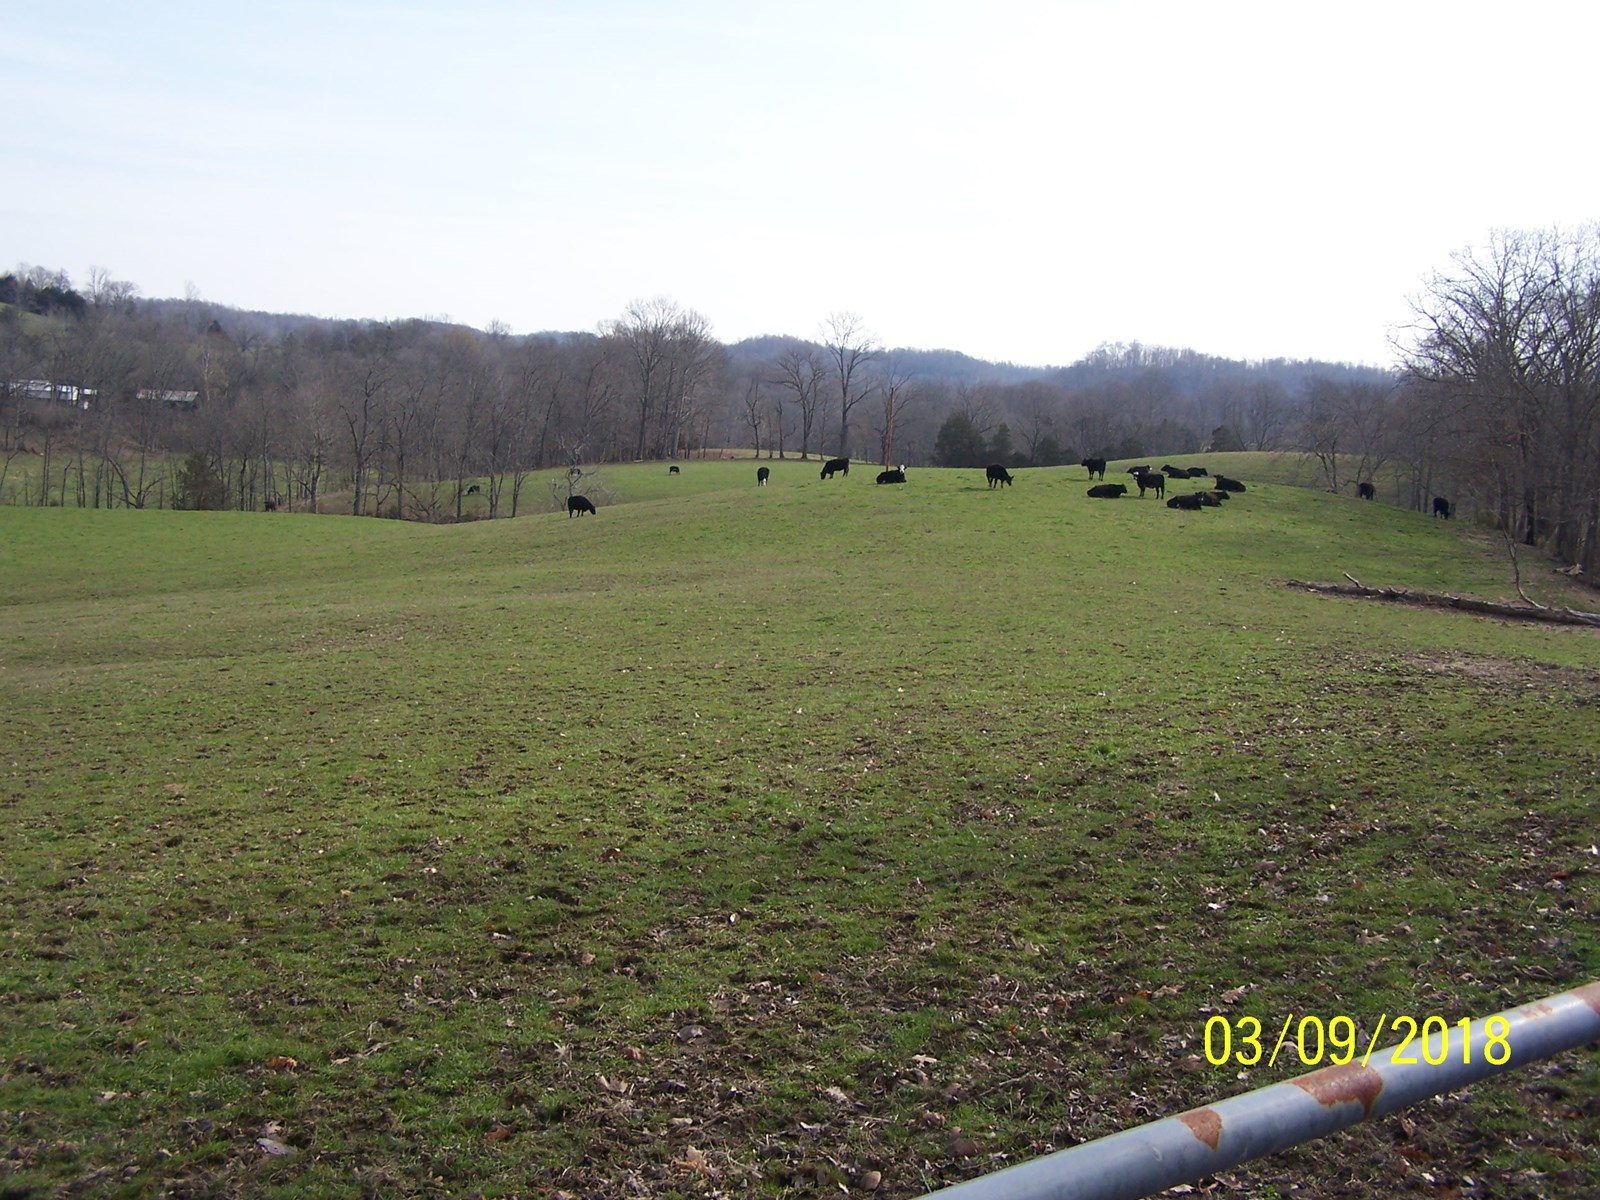 52 FENCED ACRES WITH US 127 FRONTAGE - CASEY COUNTY KENTUCKY